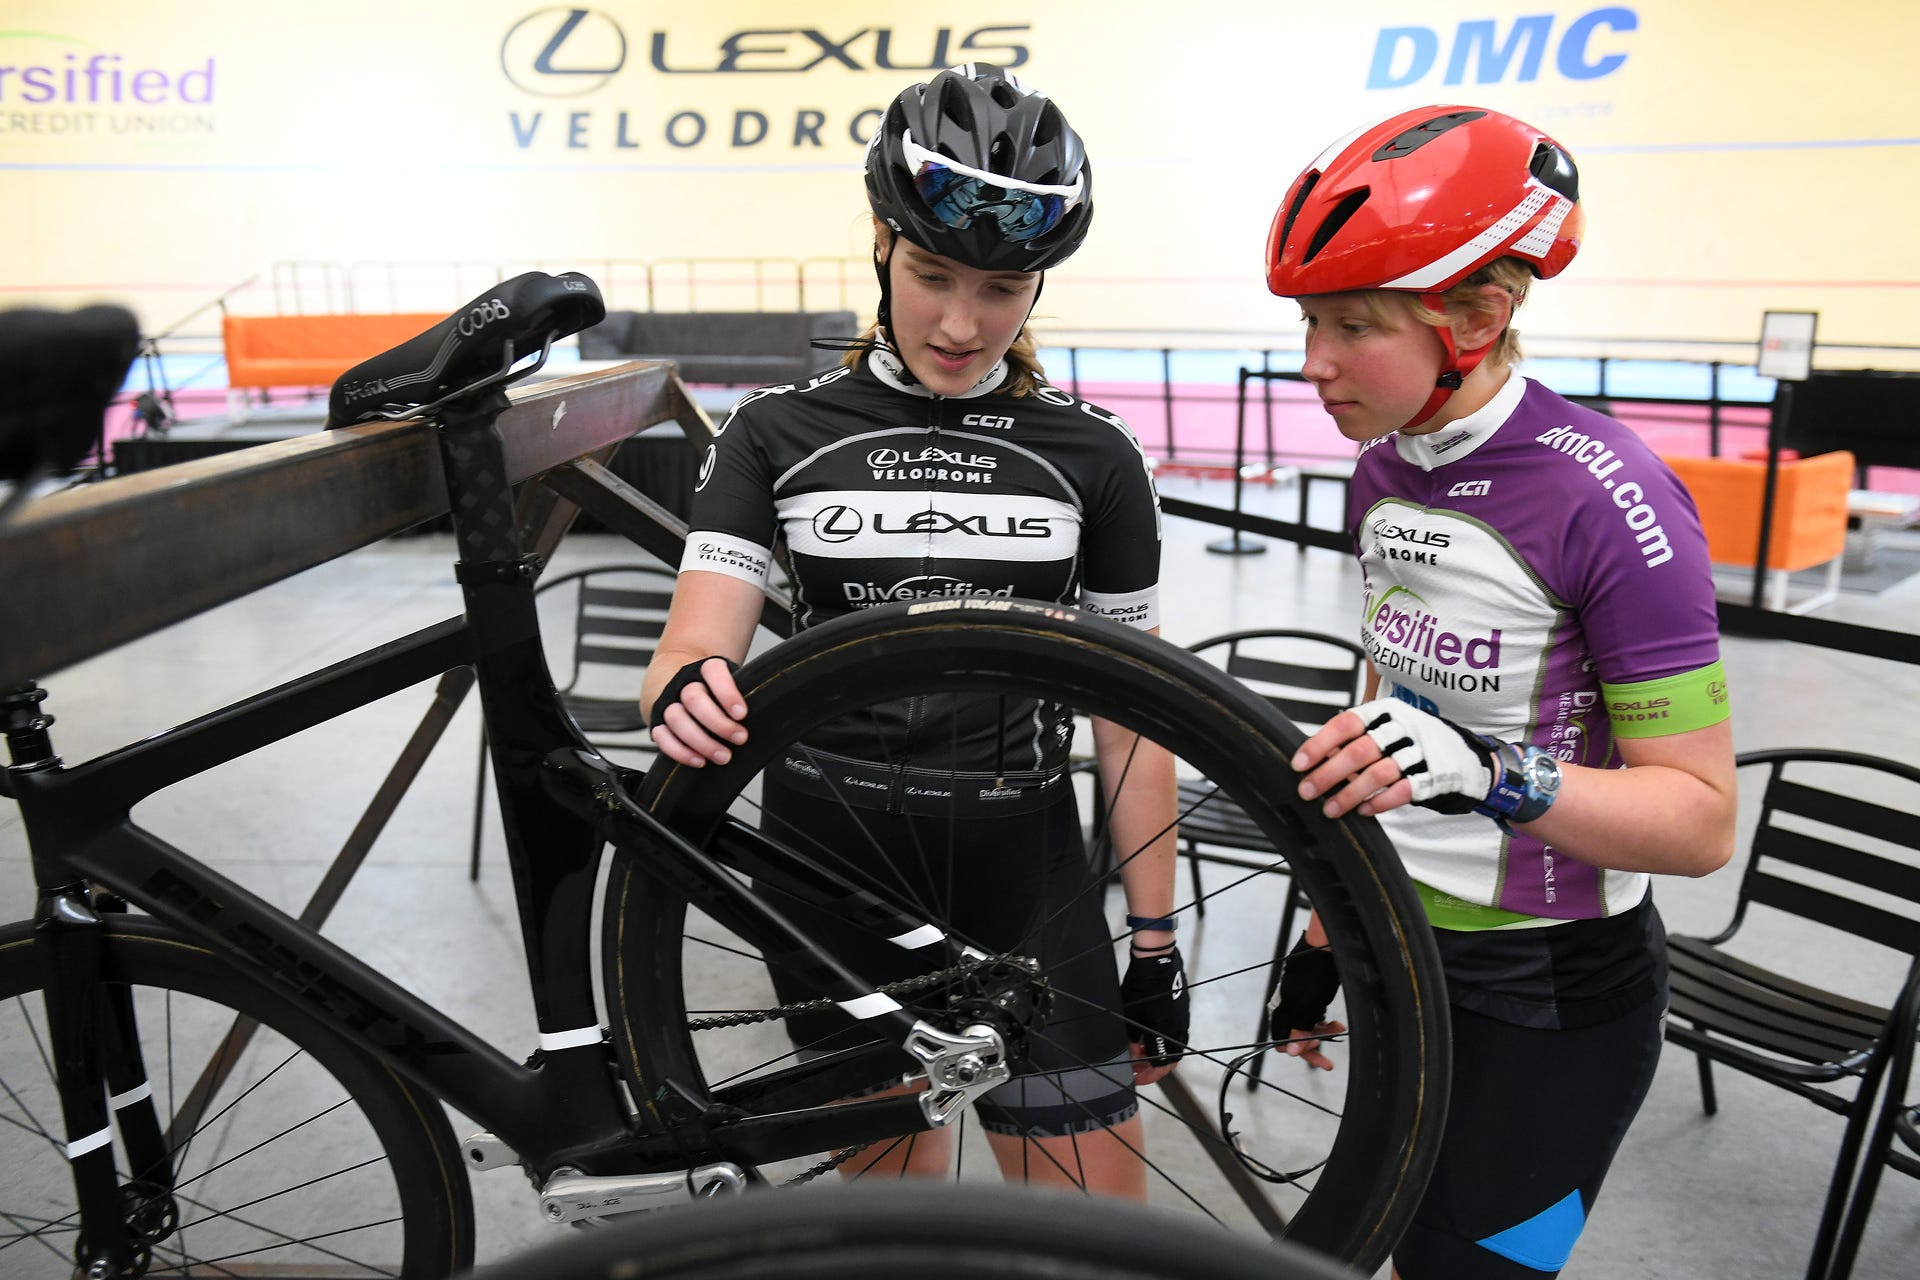 Rebecca Hartrick, 16, of Auburn Hills, right, with Autumn Caya, 15, of Shelby Township talking about bicycle tires at the Thursday night structured training at the Lexus Velodrome in Detroit on June 13, 2019. (Robin Buckson / The Detroit News)Robin Buckson, The Detroit News